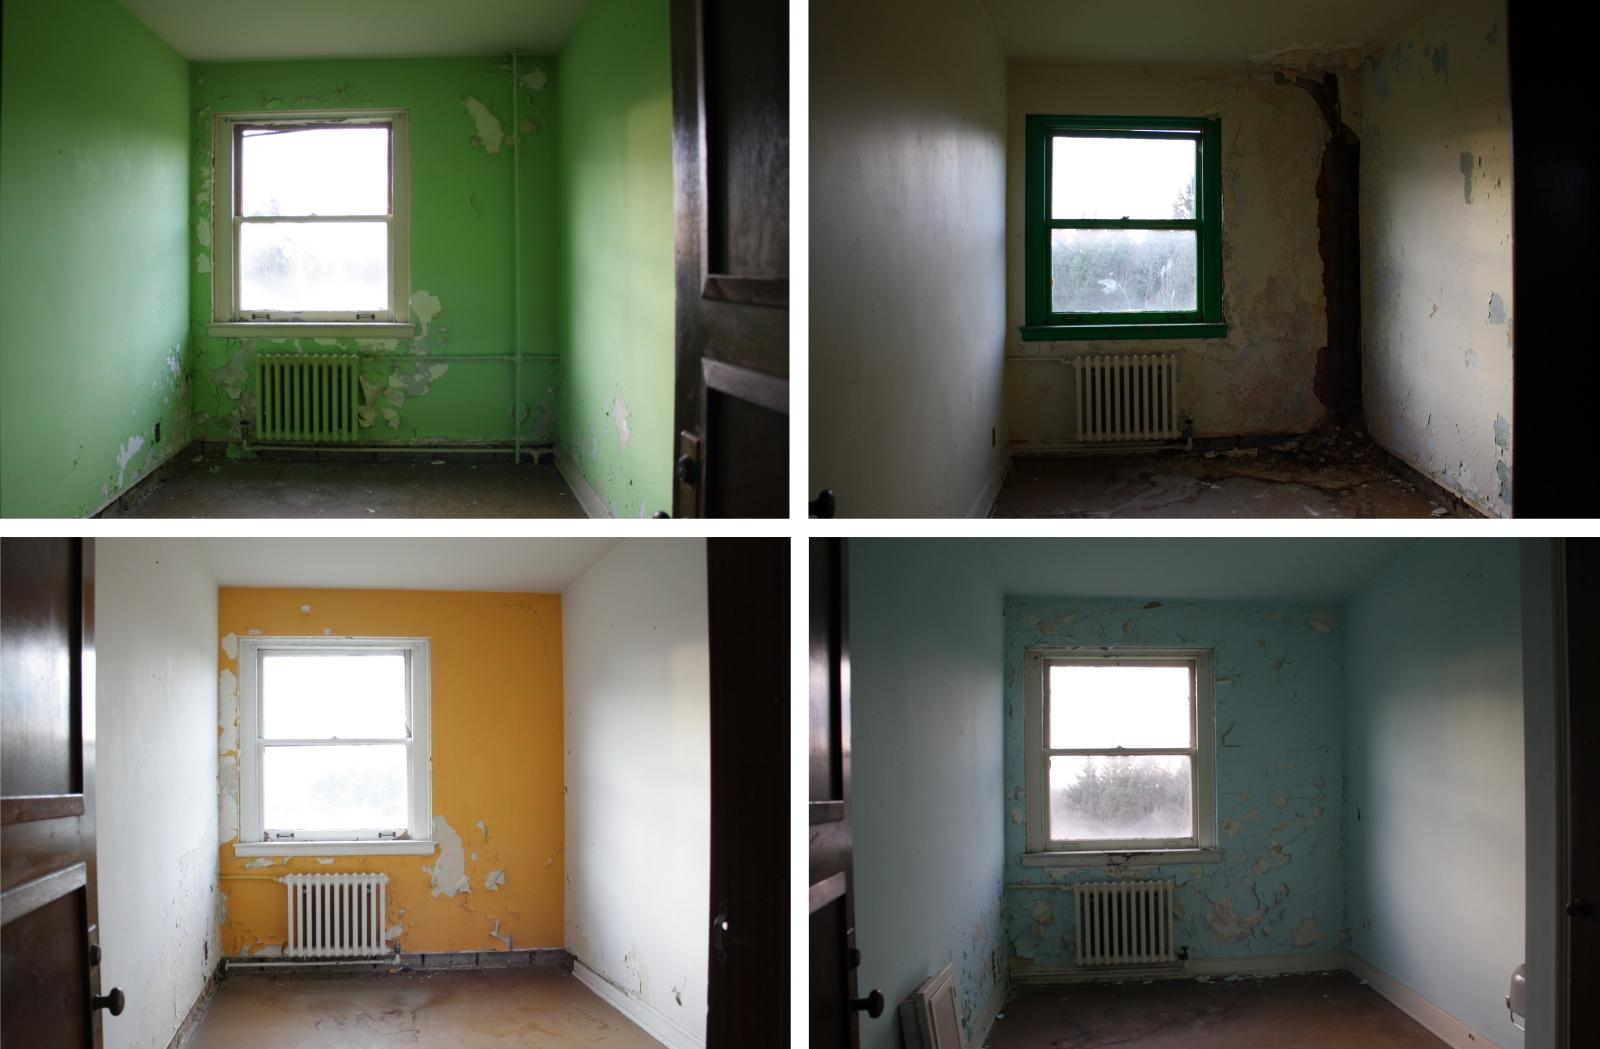 Tiny Rooms should the state give this rotting kenmore seminary to a developer